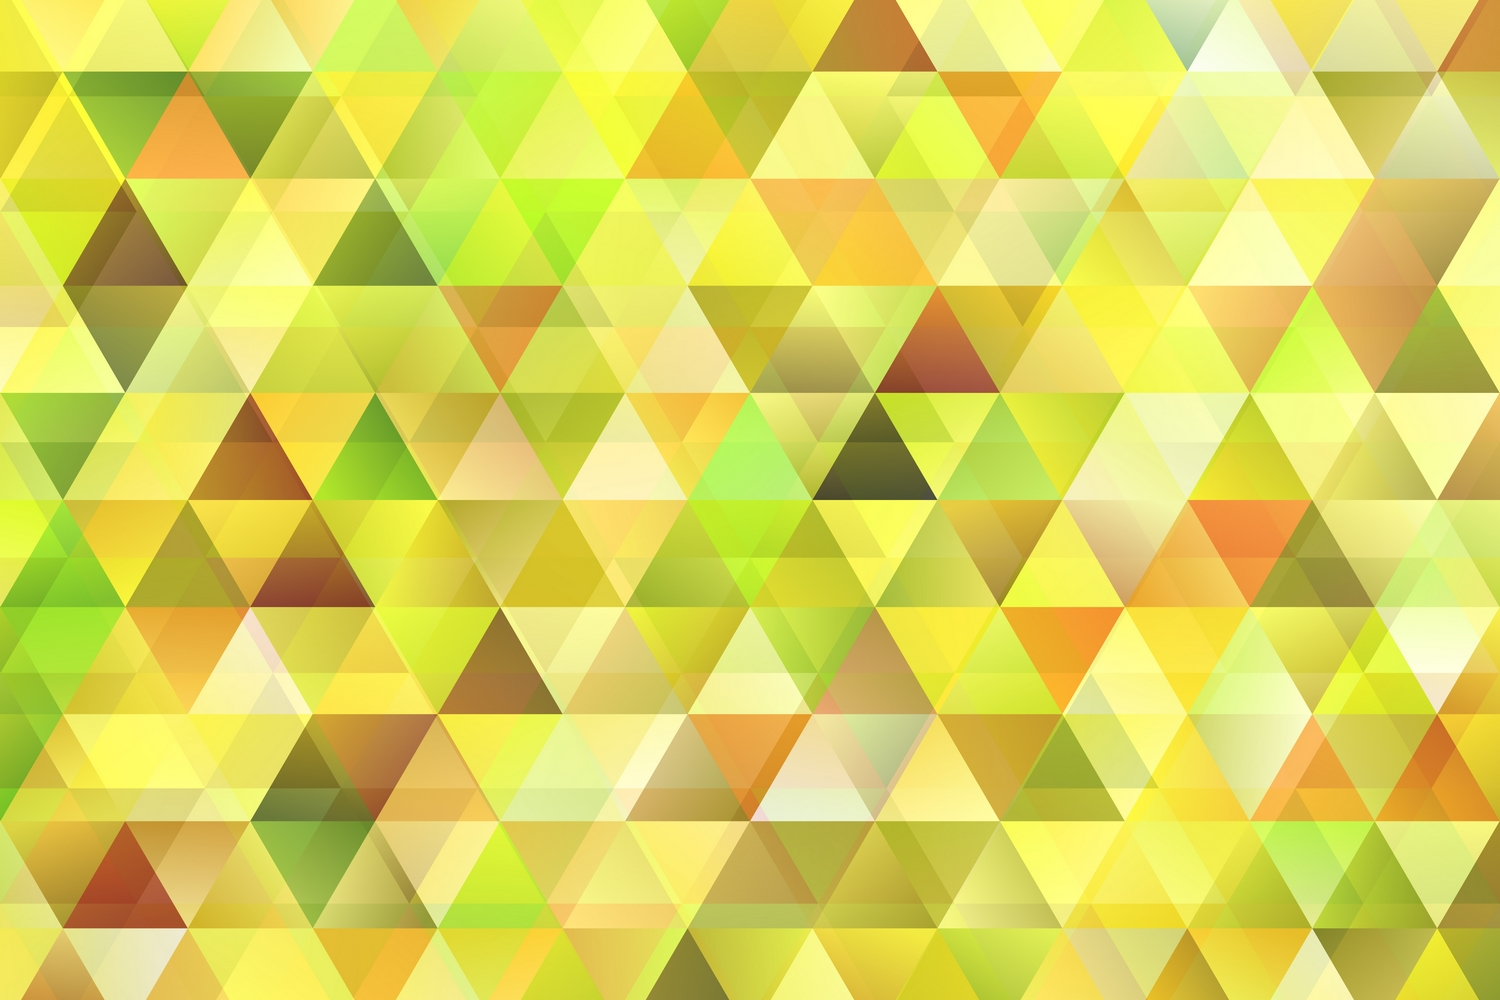 24 Gradient Polygon Backgrounds AI, EPS, JPG 5000x5000 example image 5